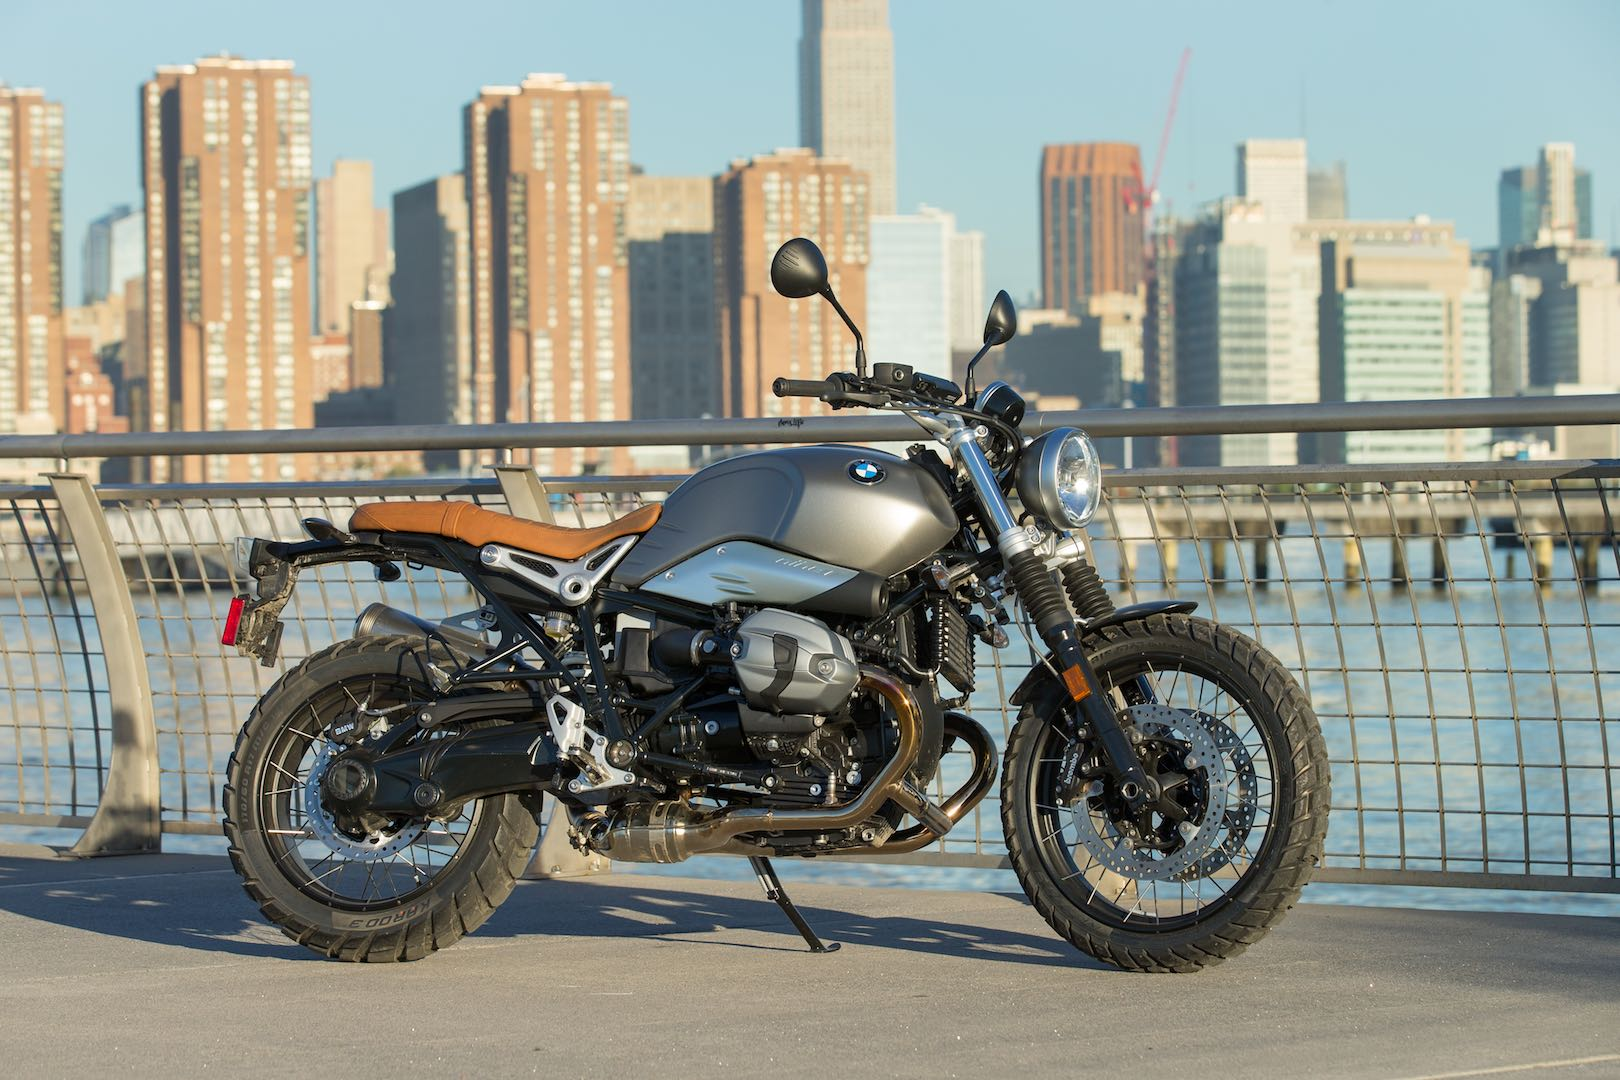 2017 BMW R nineT Scrambler First Ride | 10 Fast Facts